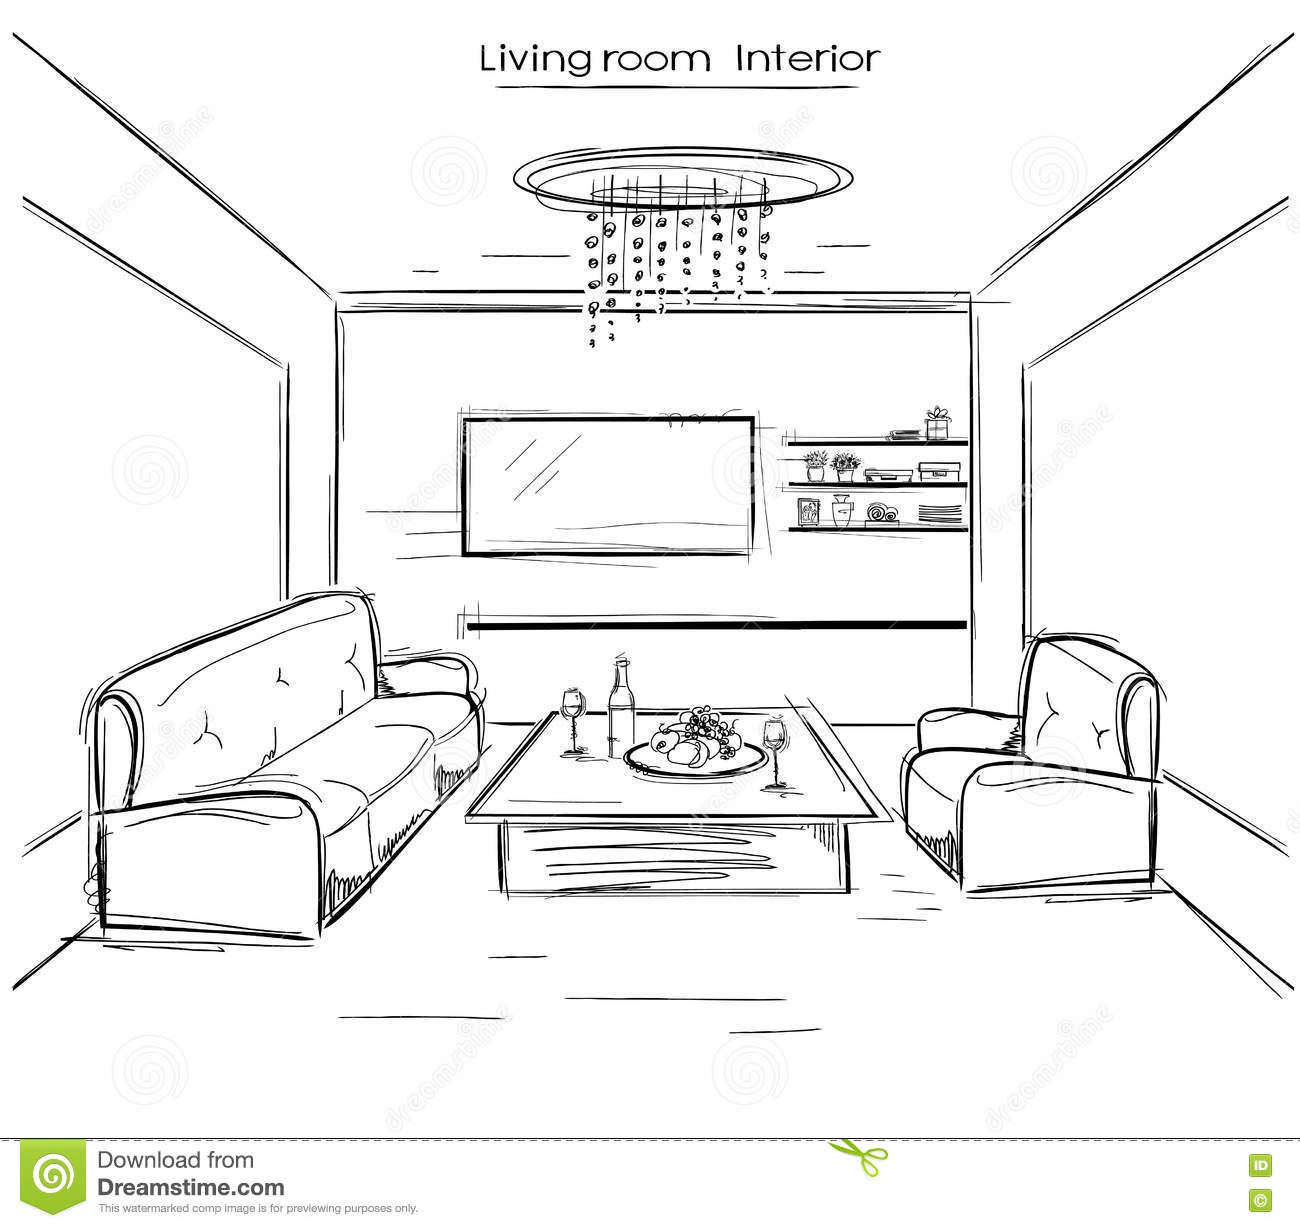 Living Room Interior.Vector Black Hand Drawing